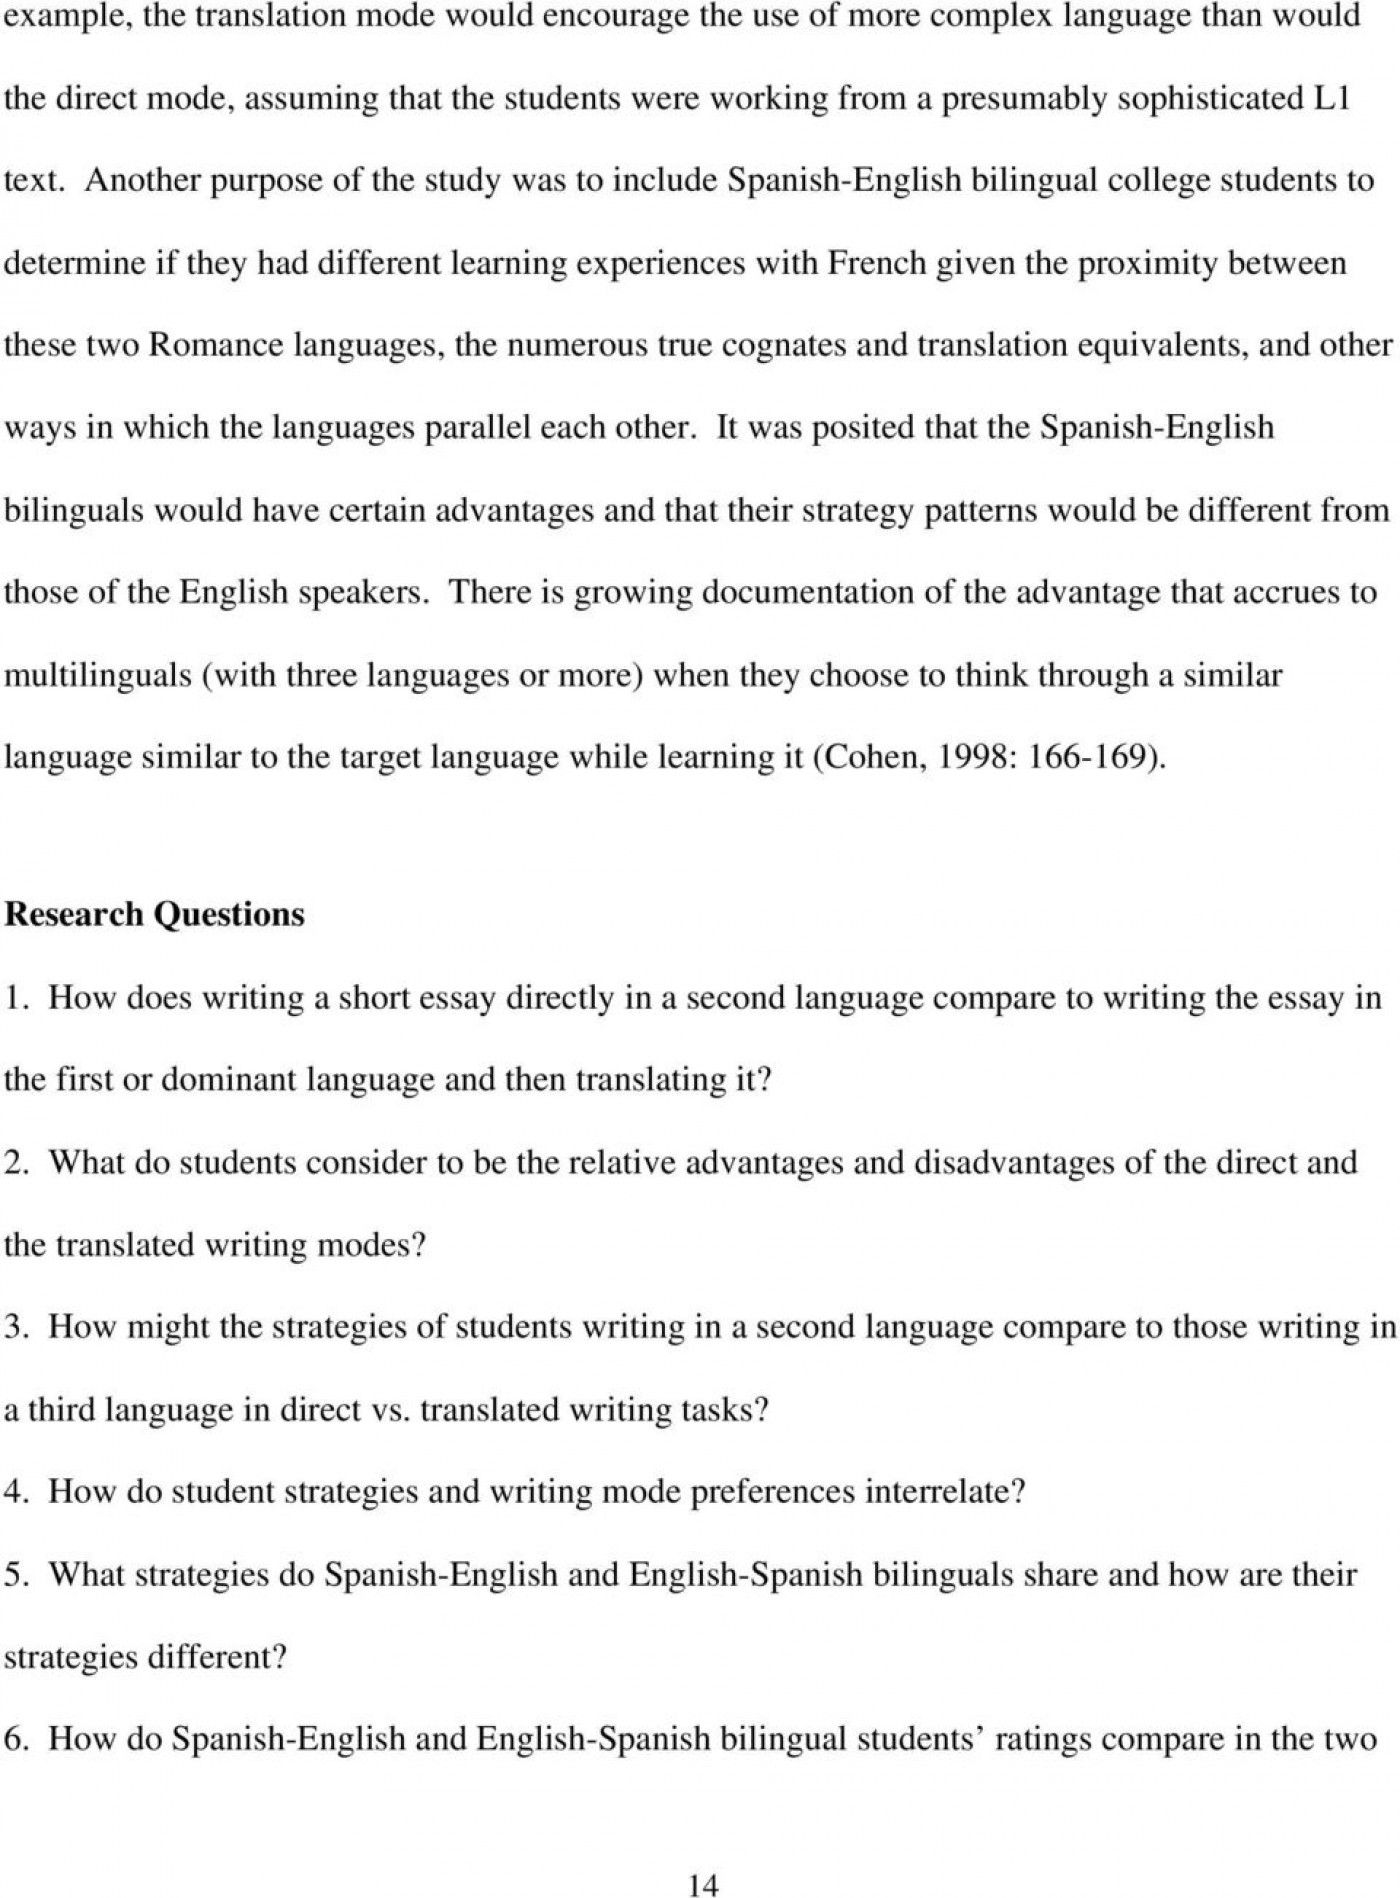 003 Translate Essay To Spanish Writing An In Direct Vs Translated What How Write About Yourself Pa Teaching Google Your My Tips Essays Phrases Staggering Into Does Mean 1400